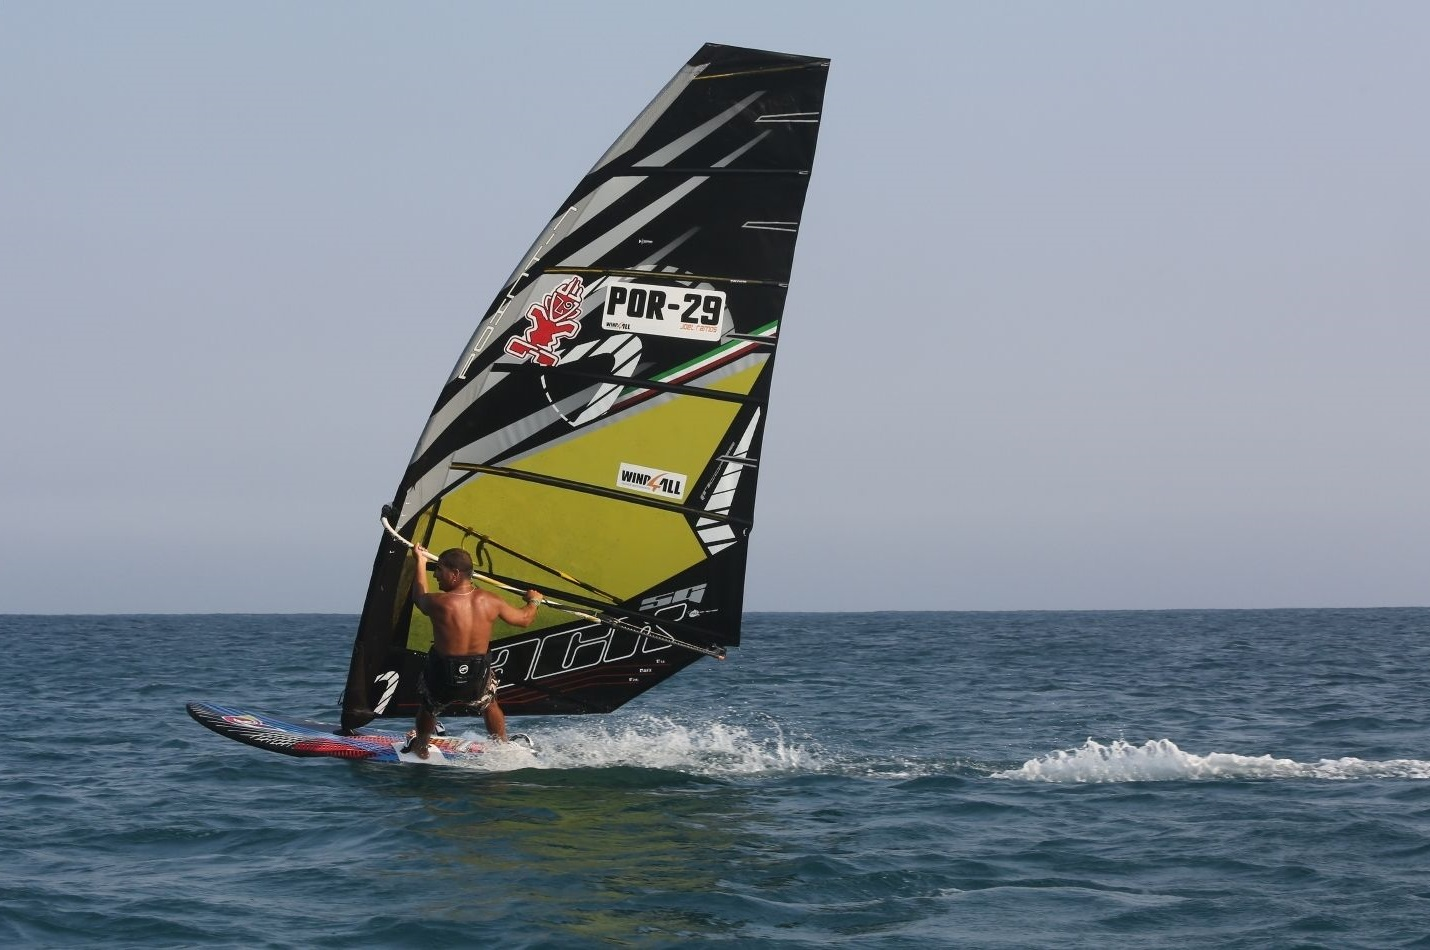 Man windsurfing to the left